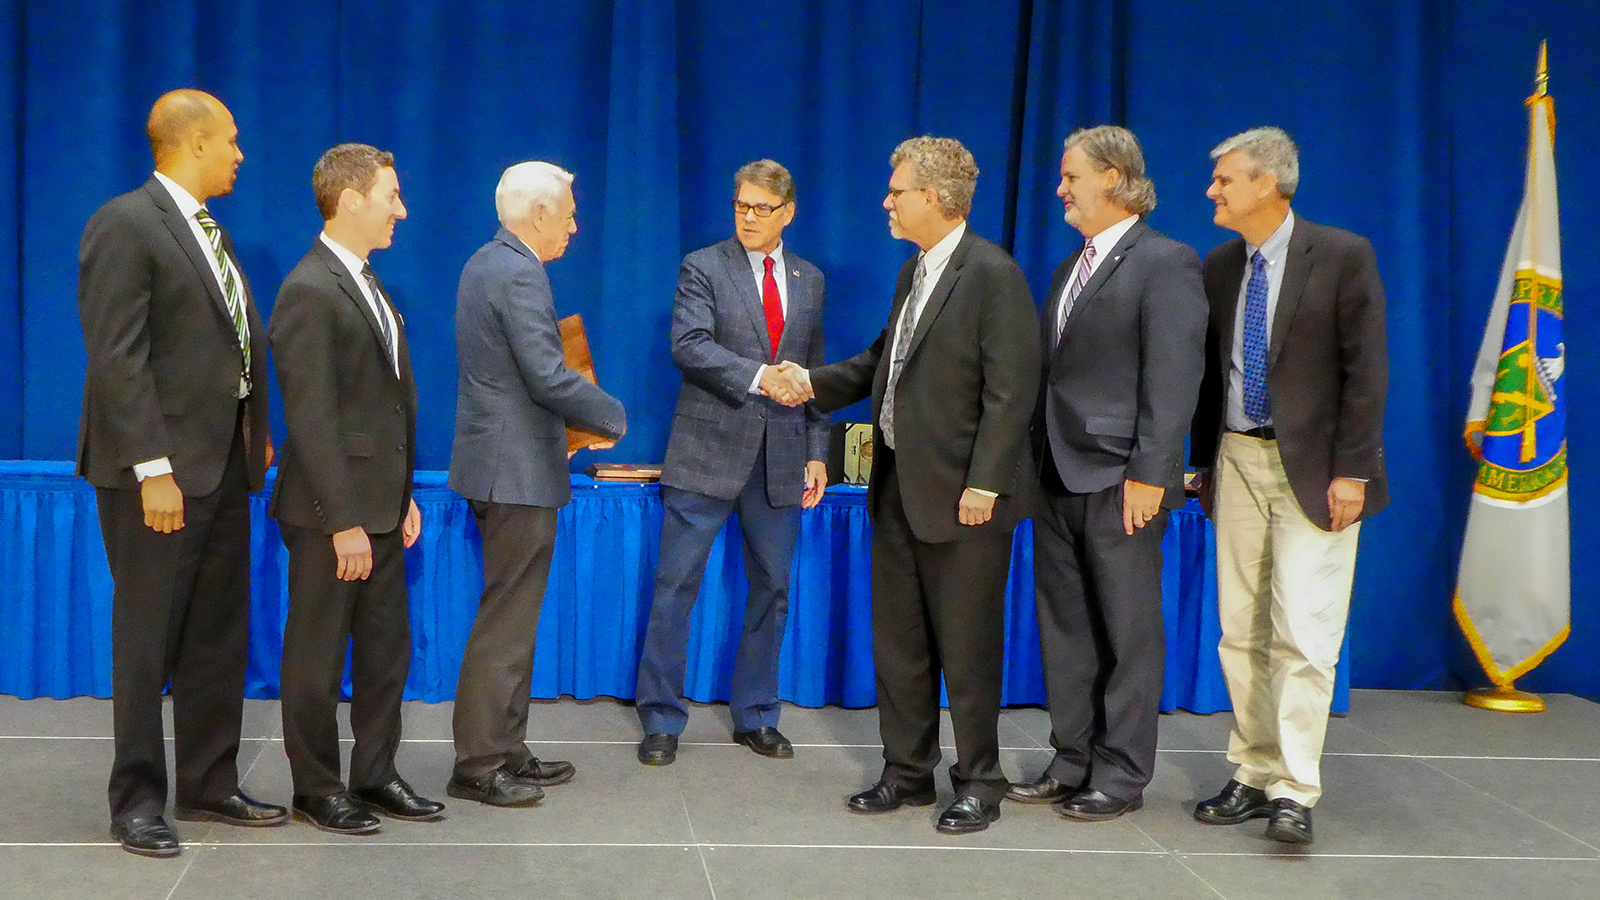 U.S. Secretary of Energy Rick Perry congratulates members of the Scientific and Operational Leadership team for the Joint Center for Energy Storage Research (JCESR) on the award.